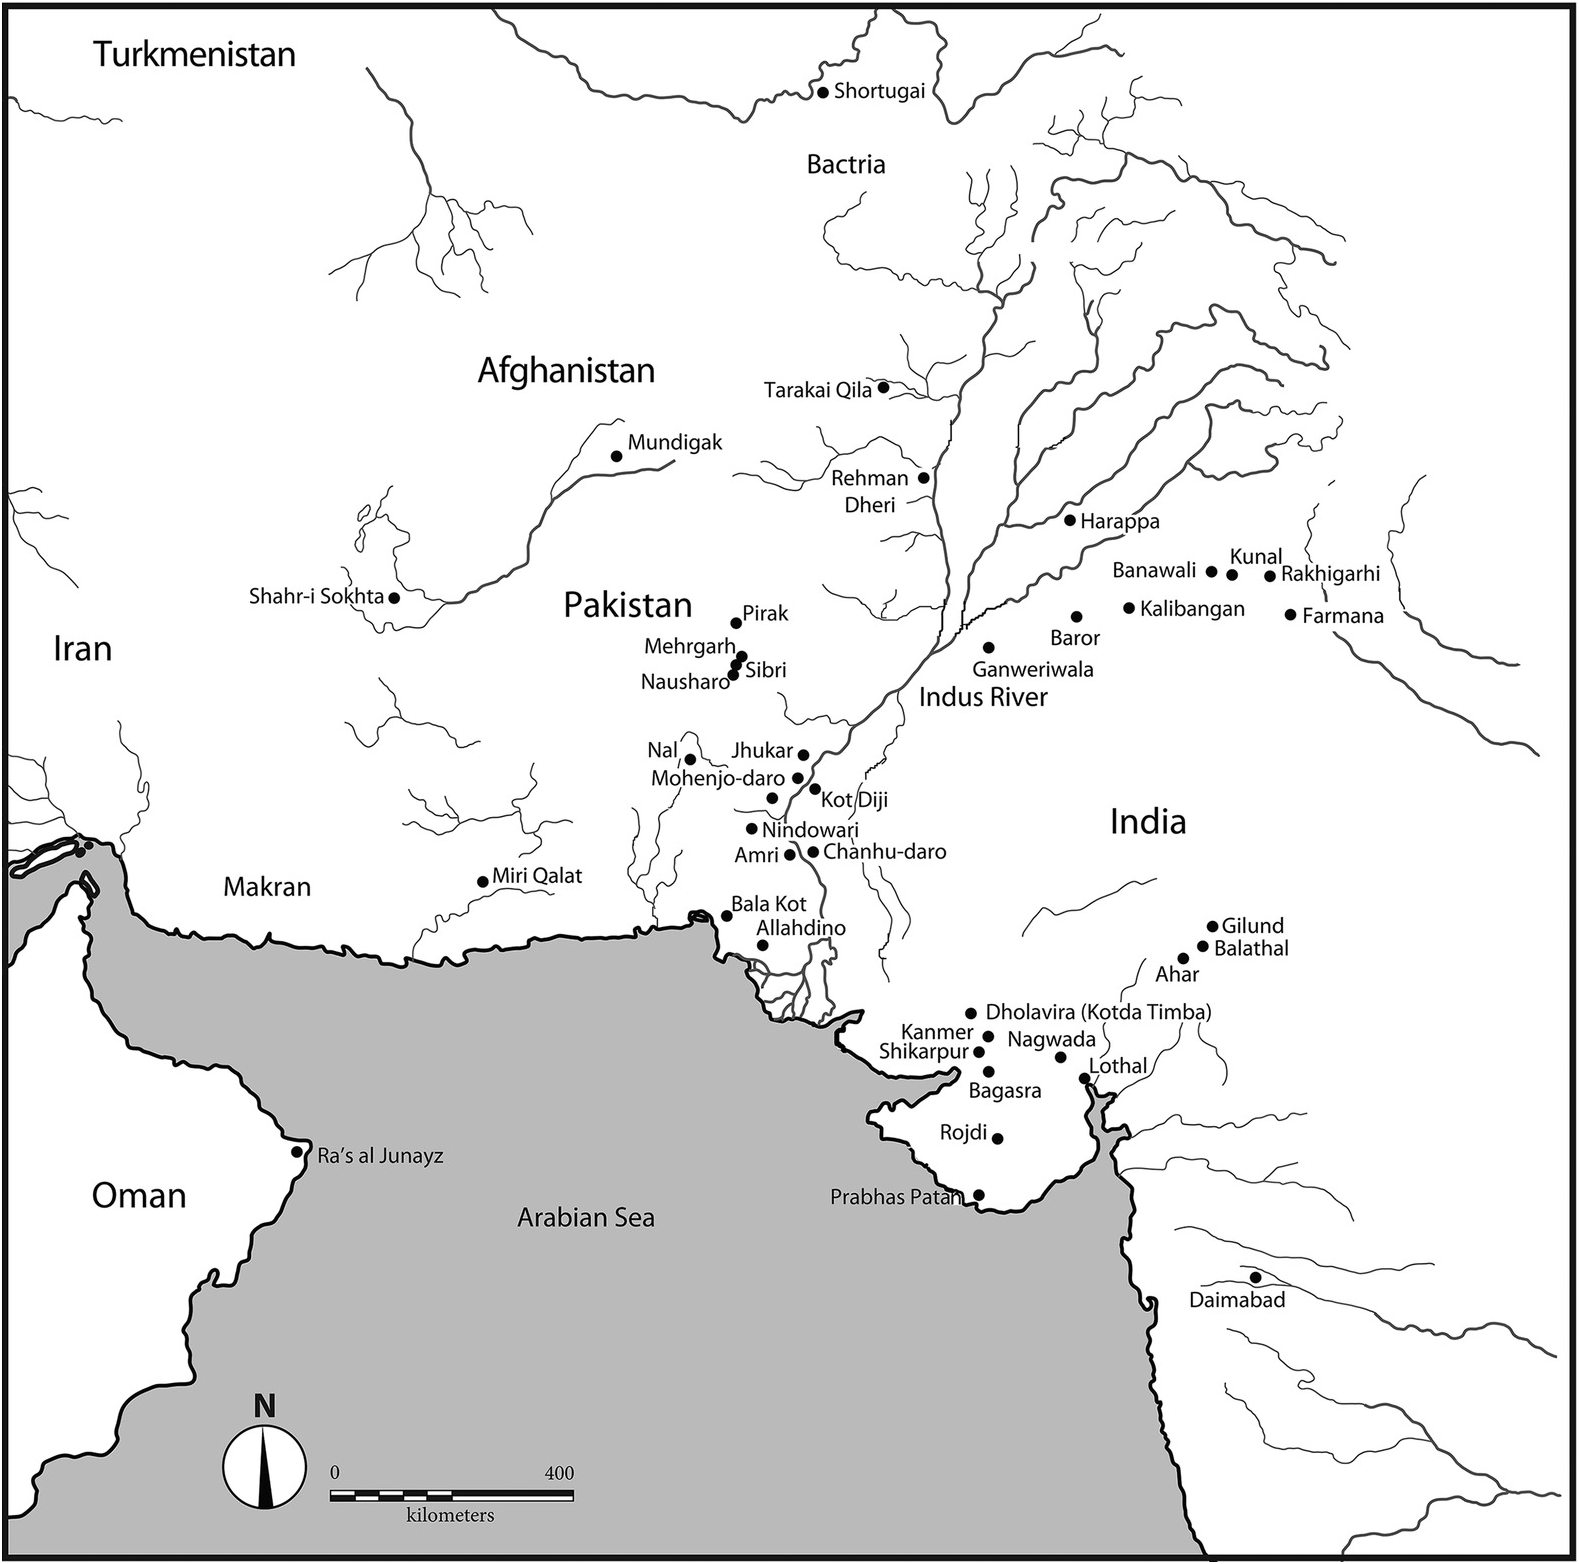 South Asia and the Gulf Region (Part II) - Seals and Sealing in the on japan on map, himalayas on map, lena river on map, kashmir on map, ganges river on map, himalayan mountains on map, yellow river on map, indian ocean on map, great indian desert on map, bangladesh on map, krishna river on map, yangzte river on map, deccan plateau on map, jordan river on map, persian gulf on map, aral sea on map, gulf of khambhat on map, irrawaddy river on map, gobi desert on map, eastern ghats on map,